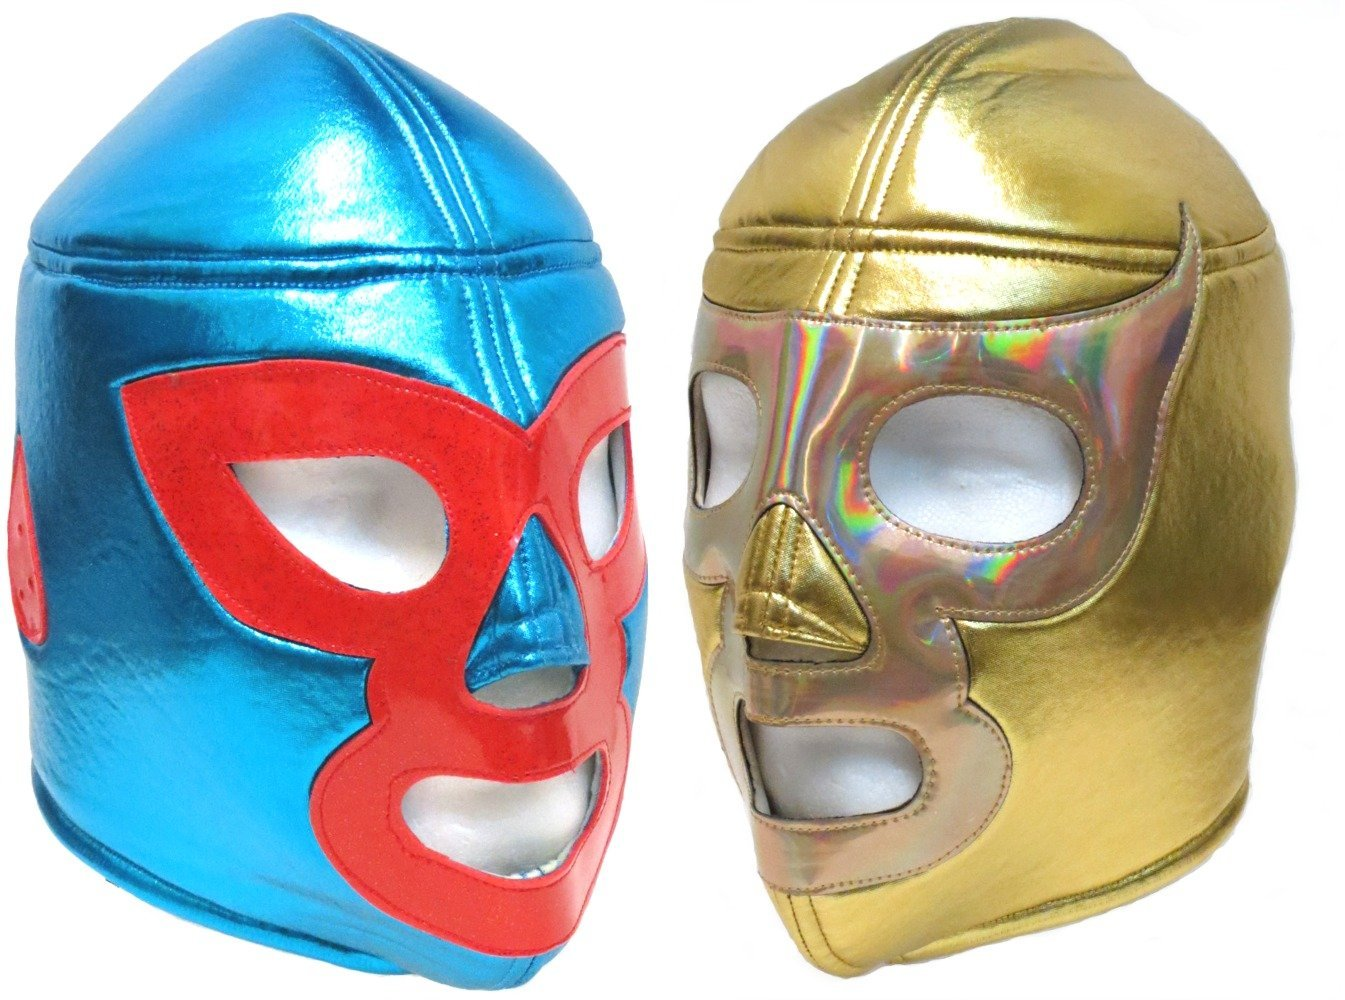 Nacho Libre and Ramses Adult Lucha Libre Wrestling Mask Combo